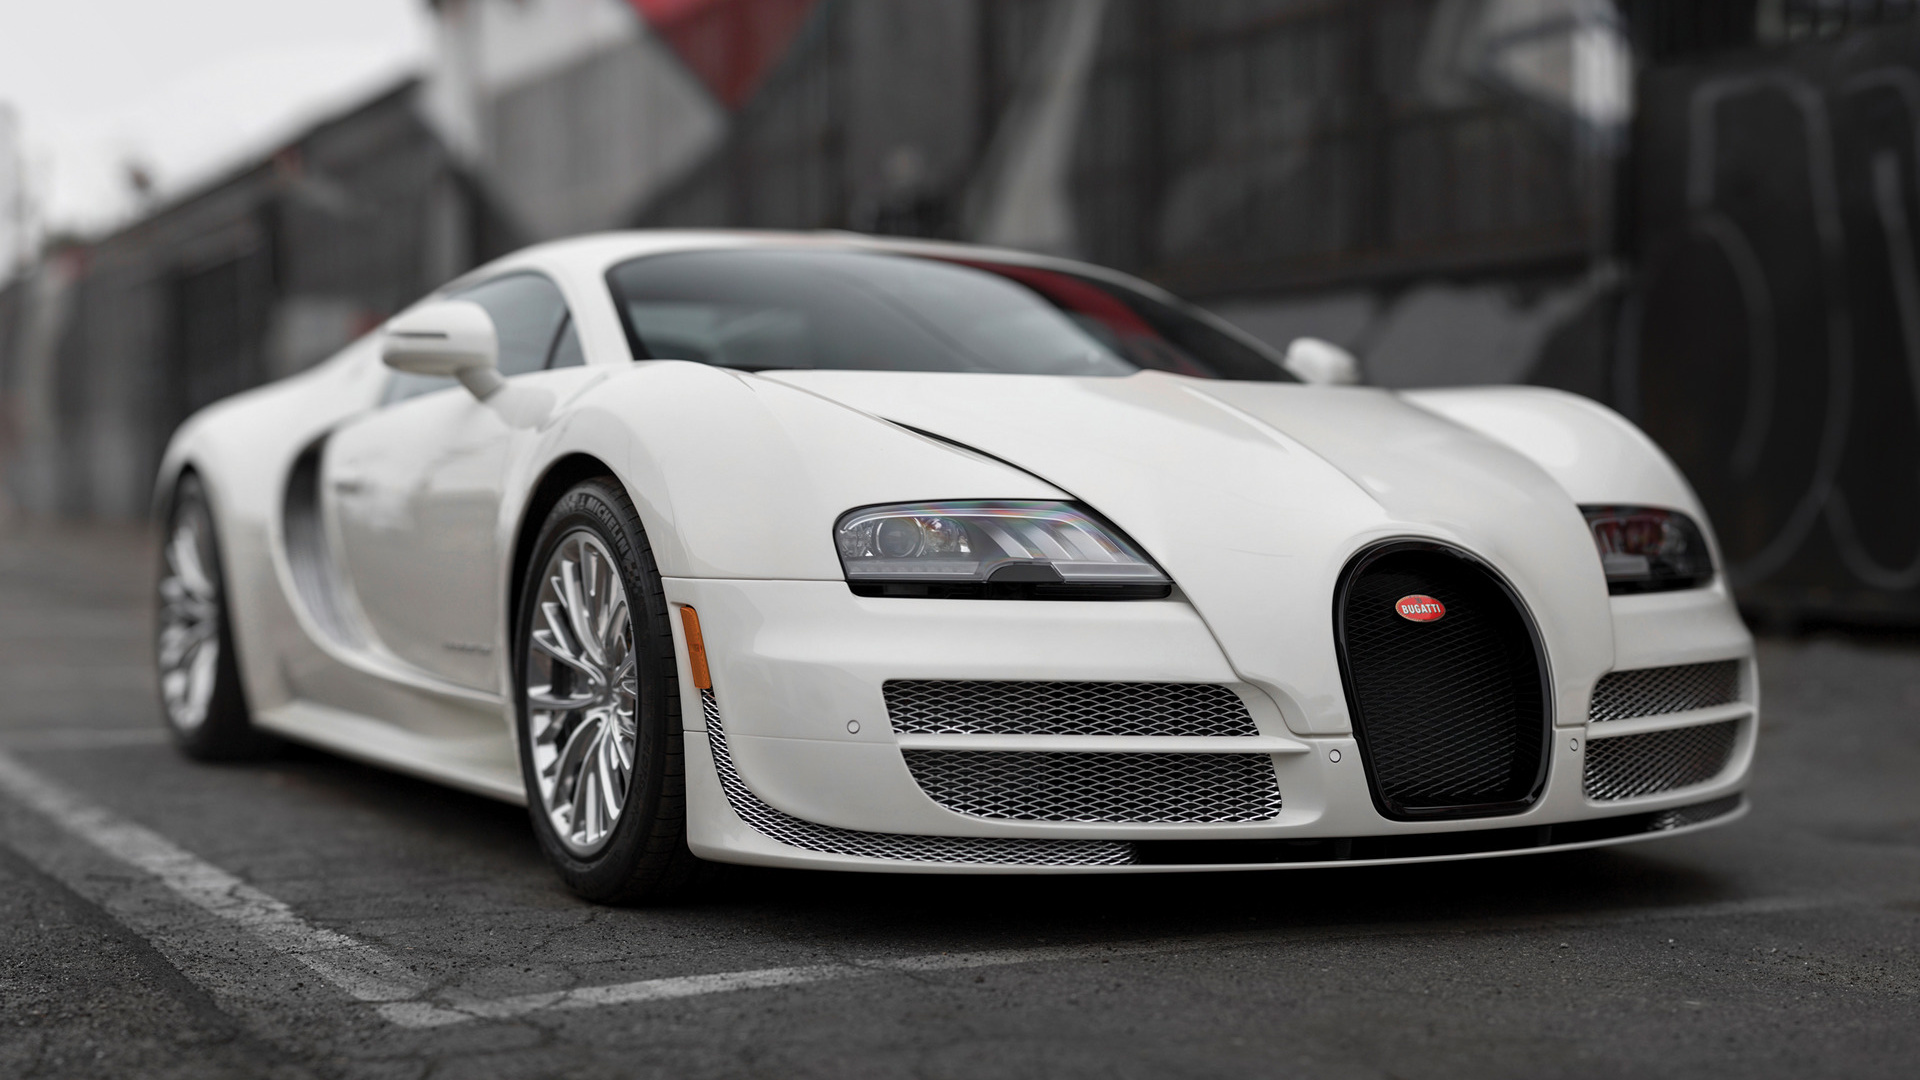 Bugatti Veyron Super Sport Full Hd Wallpaper: 2010 Bugatti Veyron Super Sport (US)